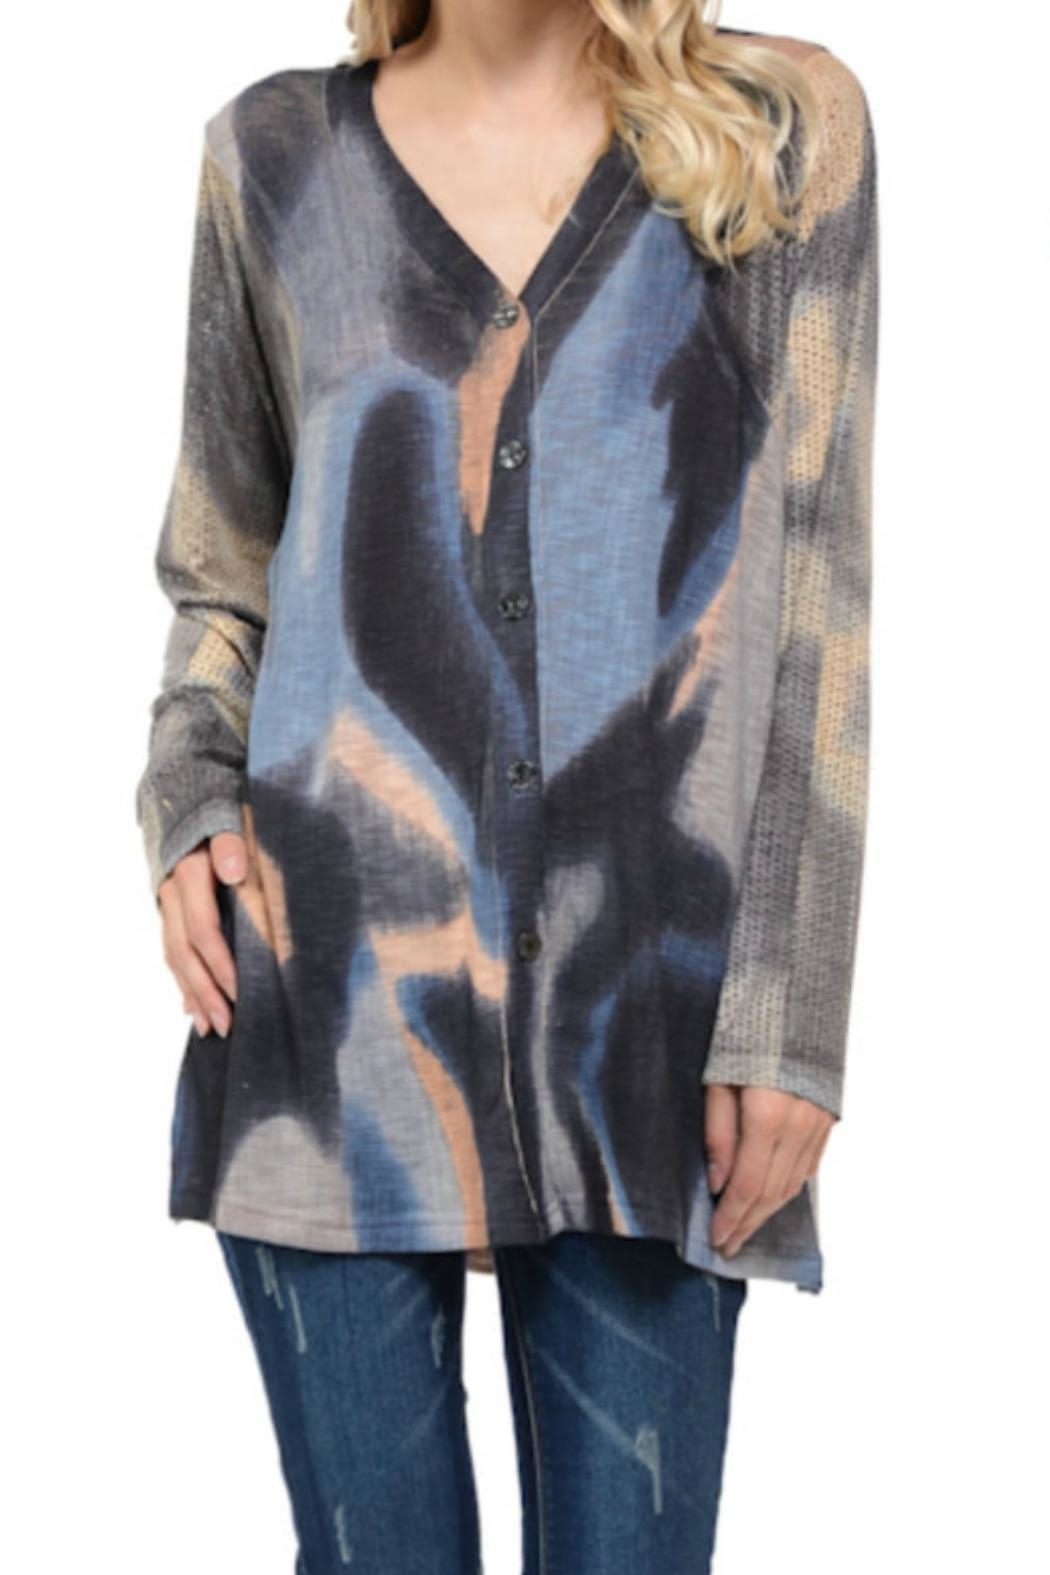 Cubism Boxy Abstract Cardigan - Main Image